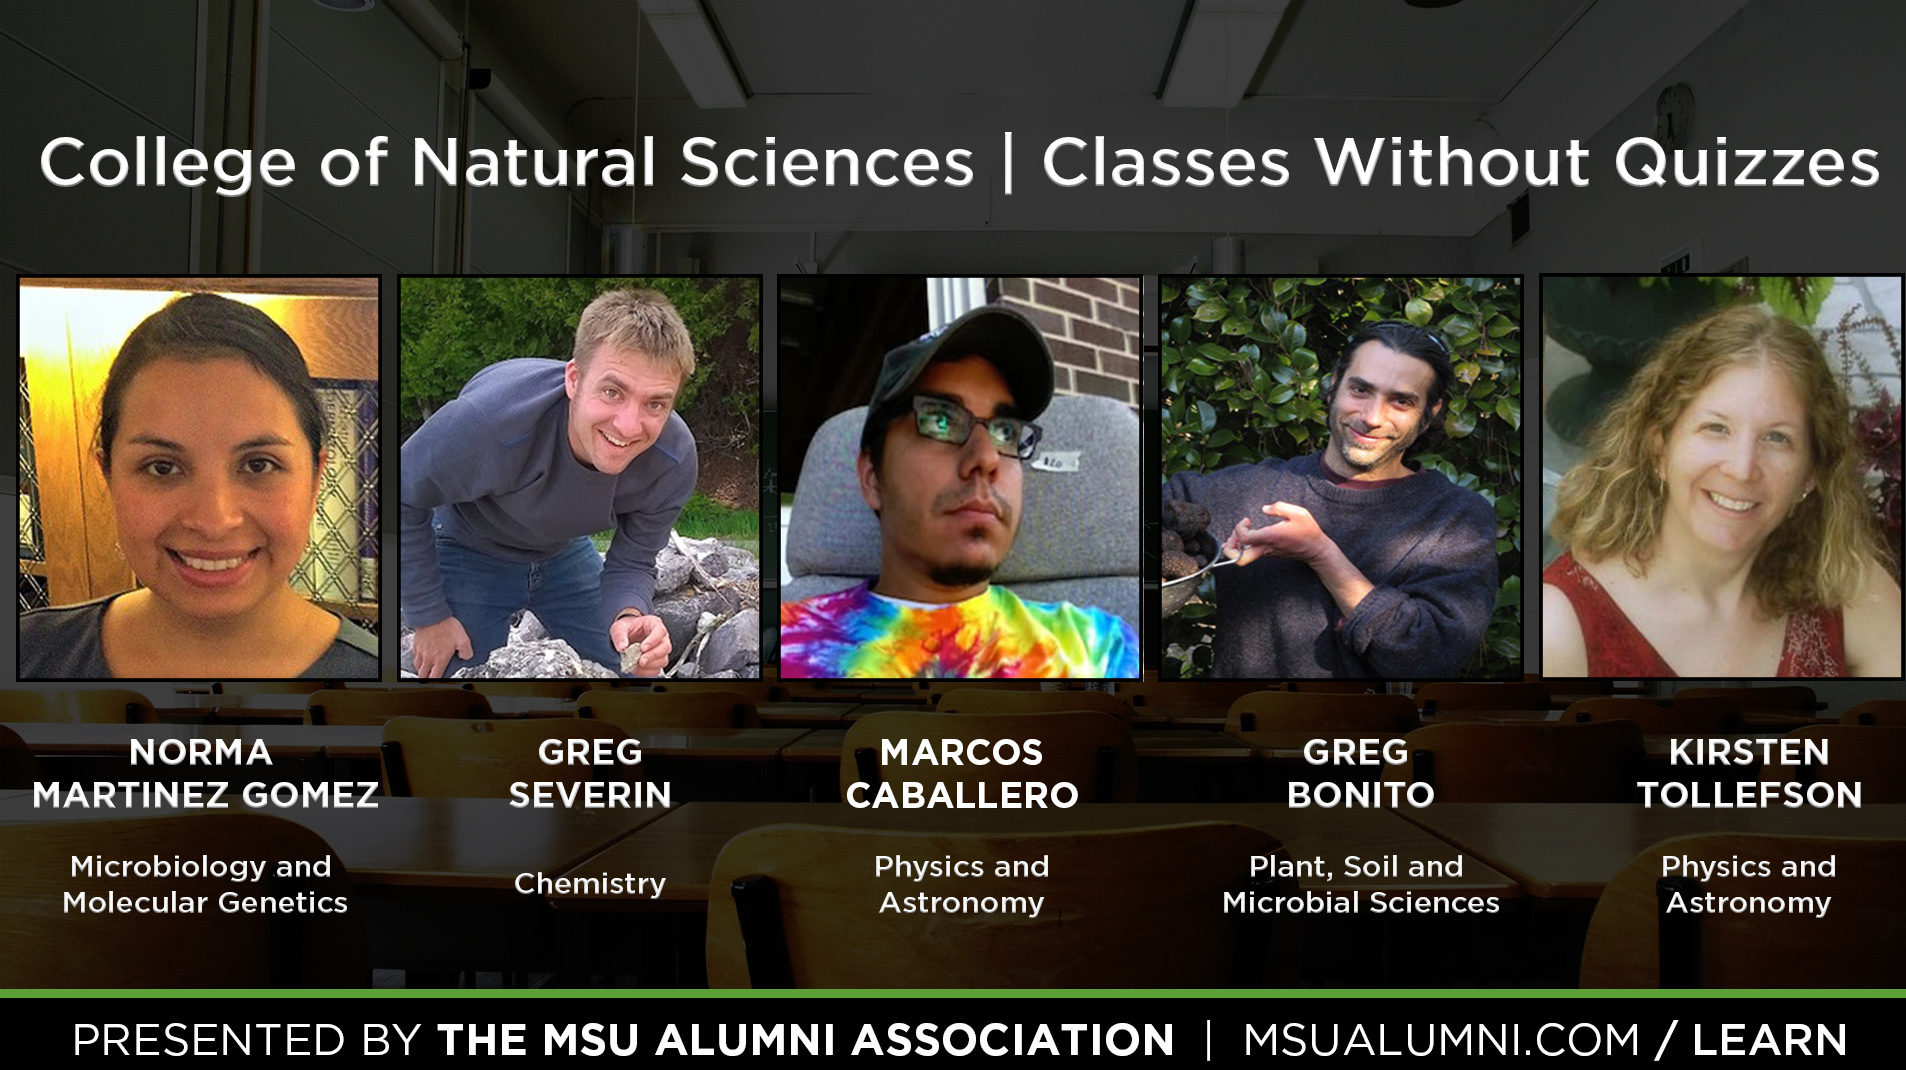 Livestream cover image for Classes Without Quizzes   Norma Martinez Gomez, Greg Severin, Marcos Caballero, Greg Bonito, & Kirsten Tollefson